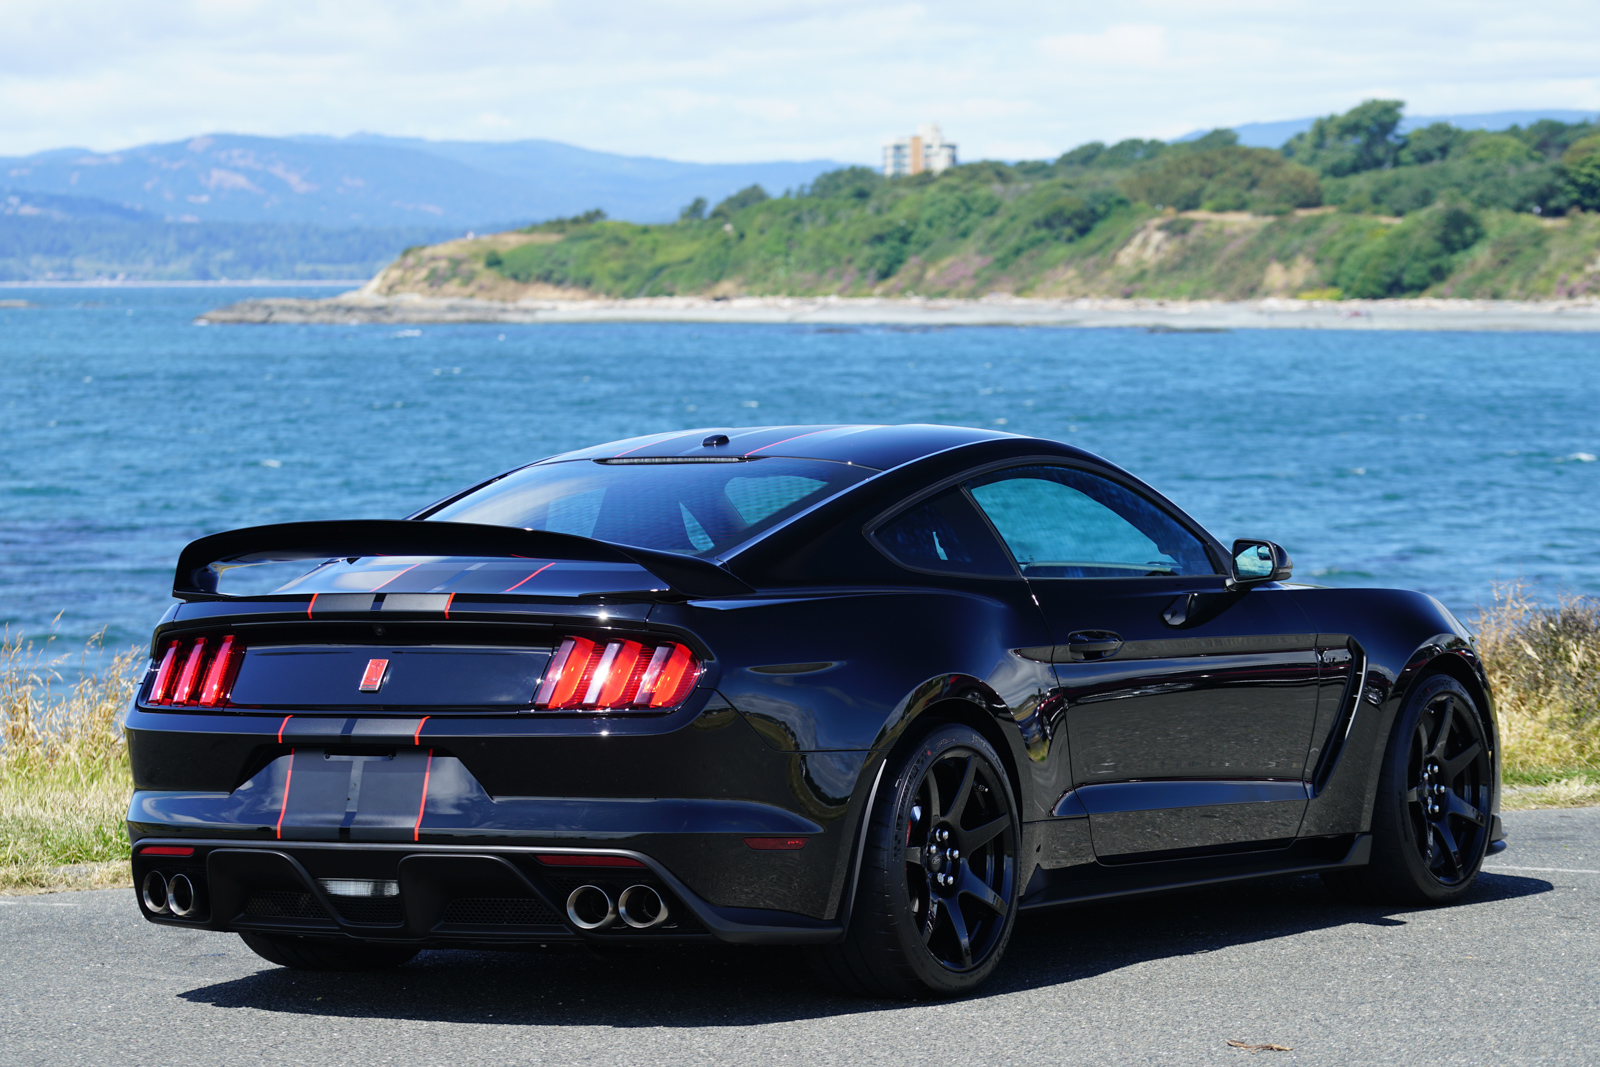 Gt350R For Sale >> 2016 Ford Shelby GT350R Mustang For Sale | Silver Arrow ...